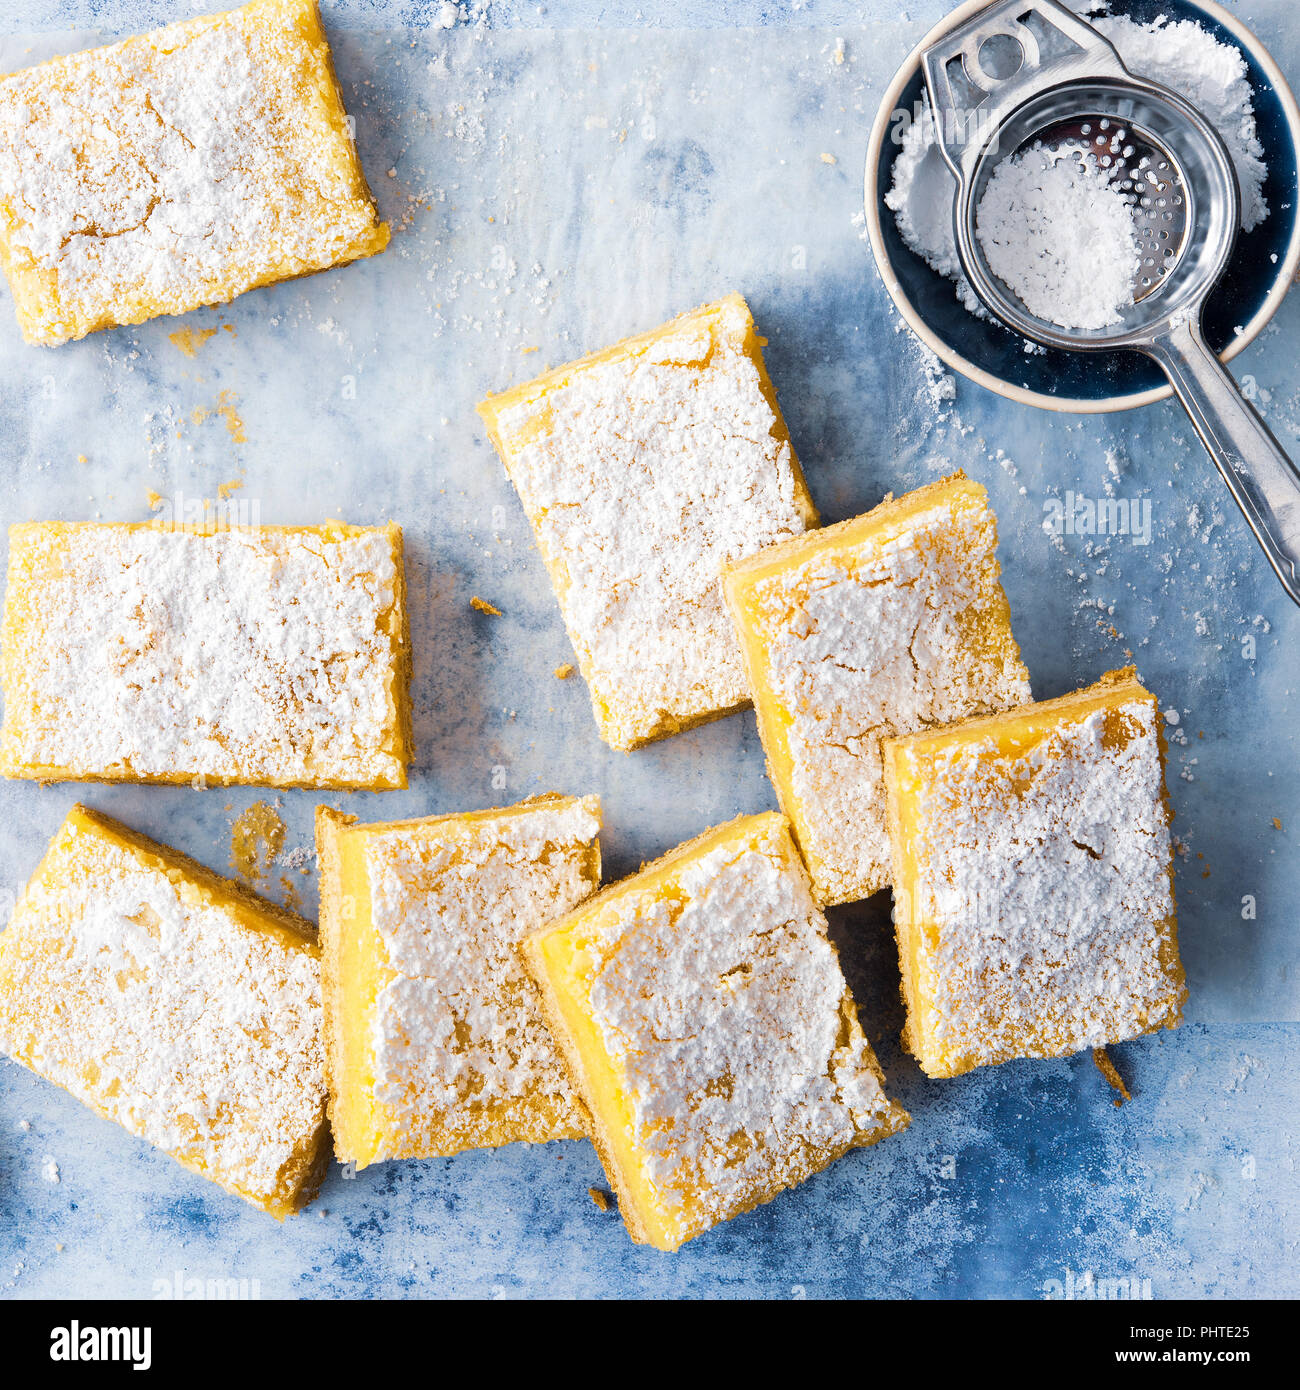 Pieces of homemade lemon slice with icing sugar in a sifter. - Stock Image